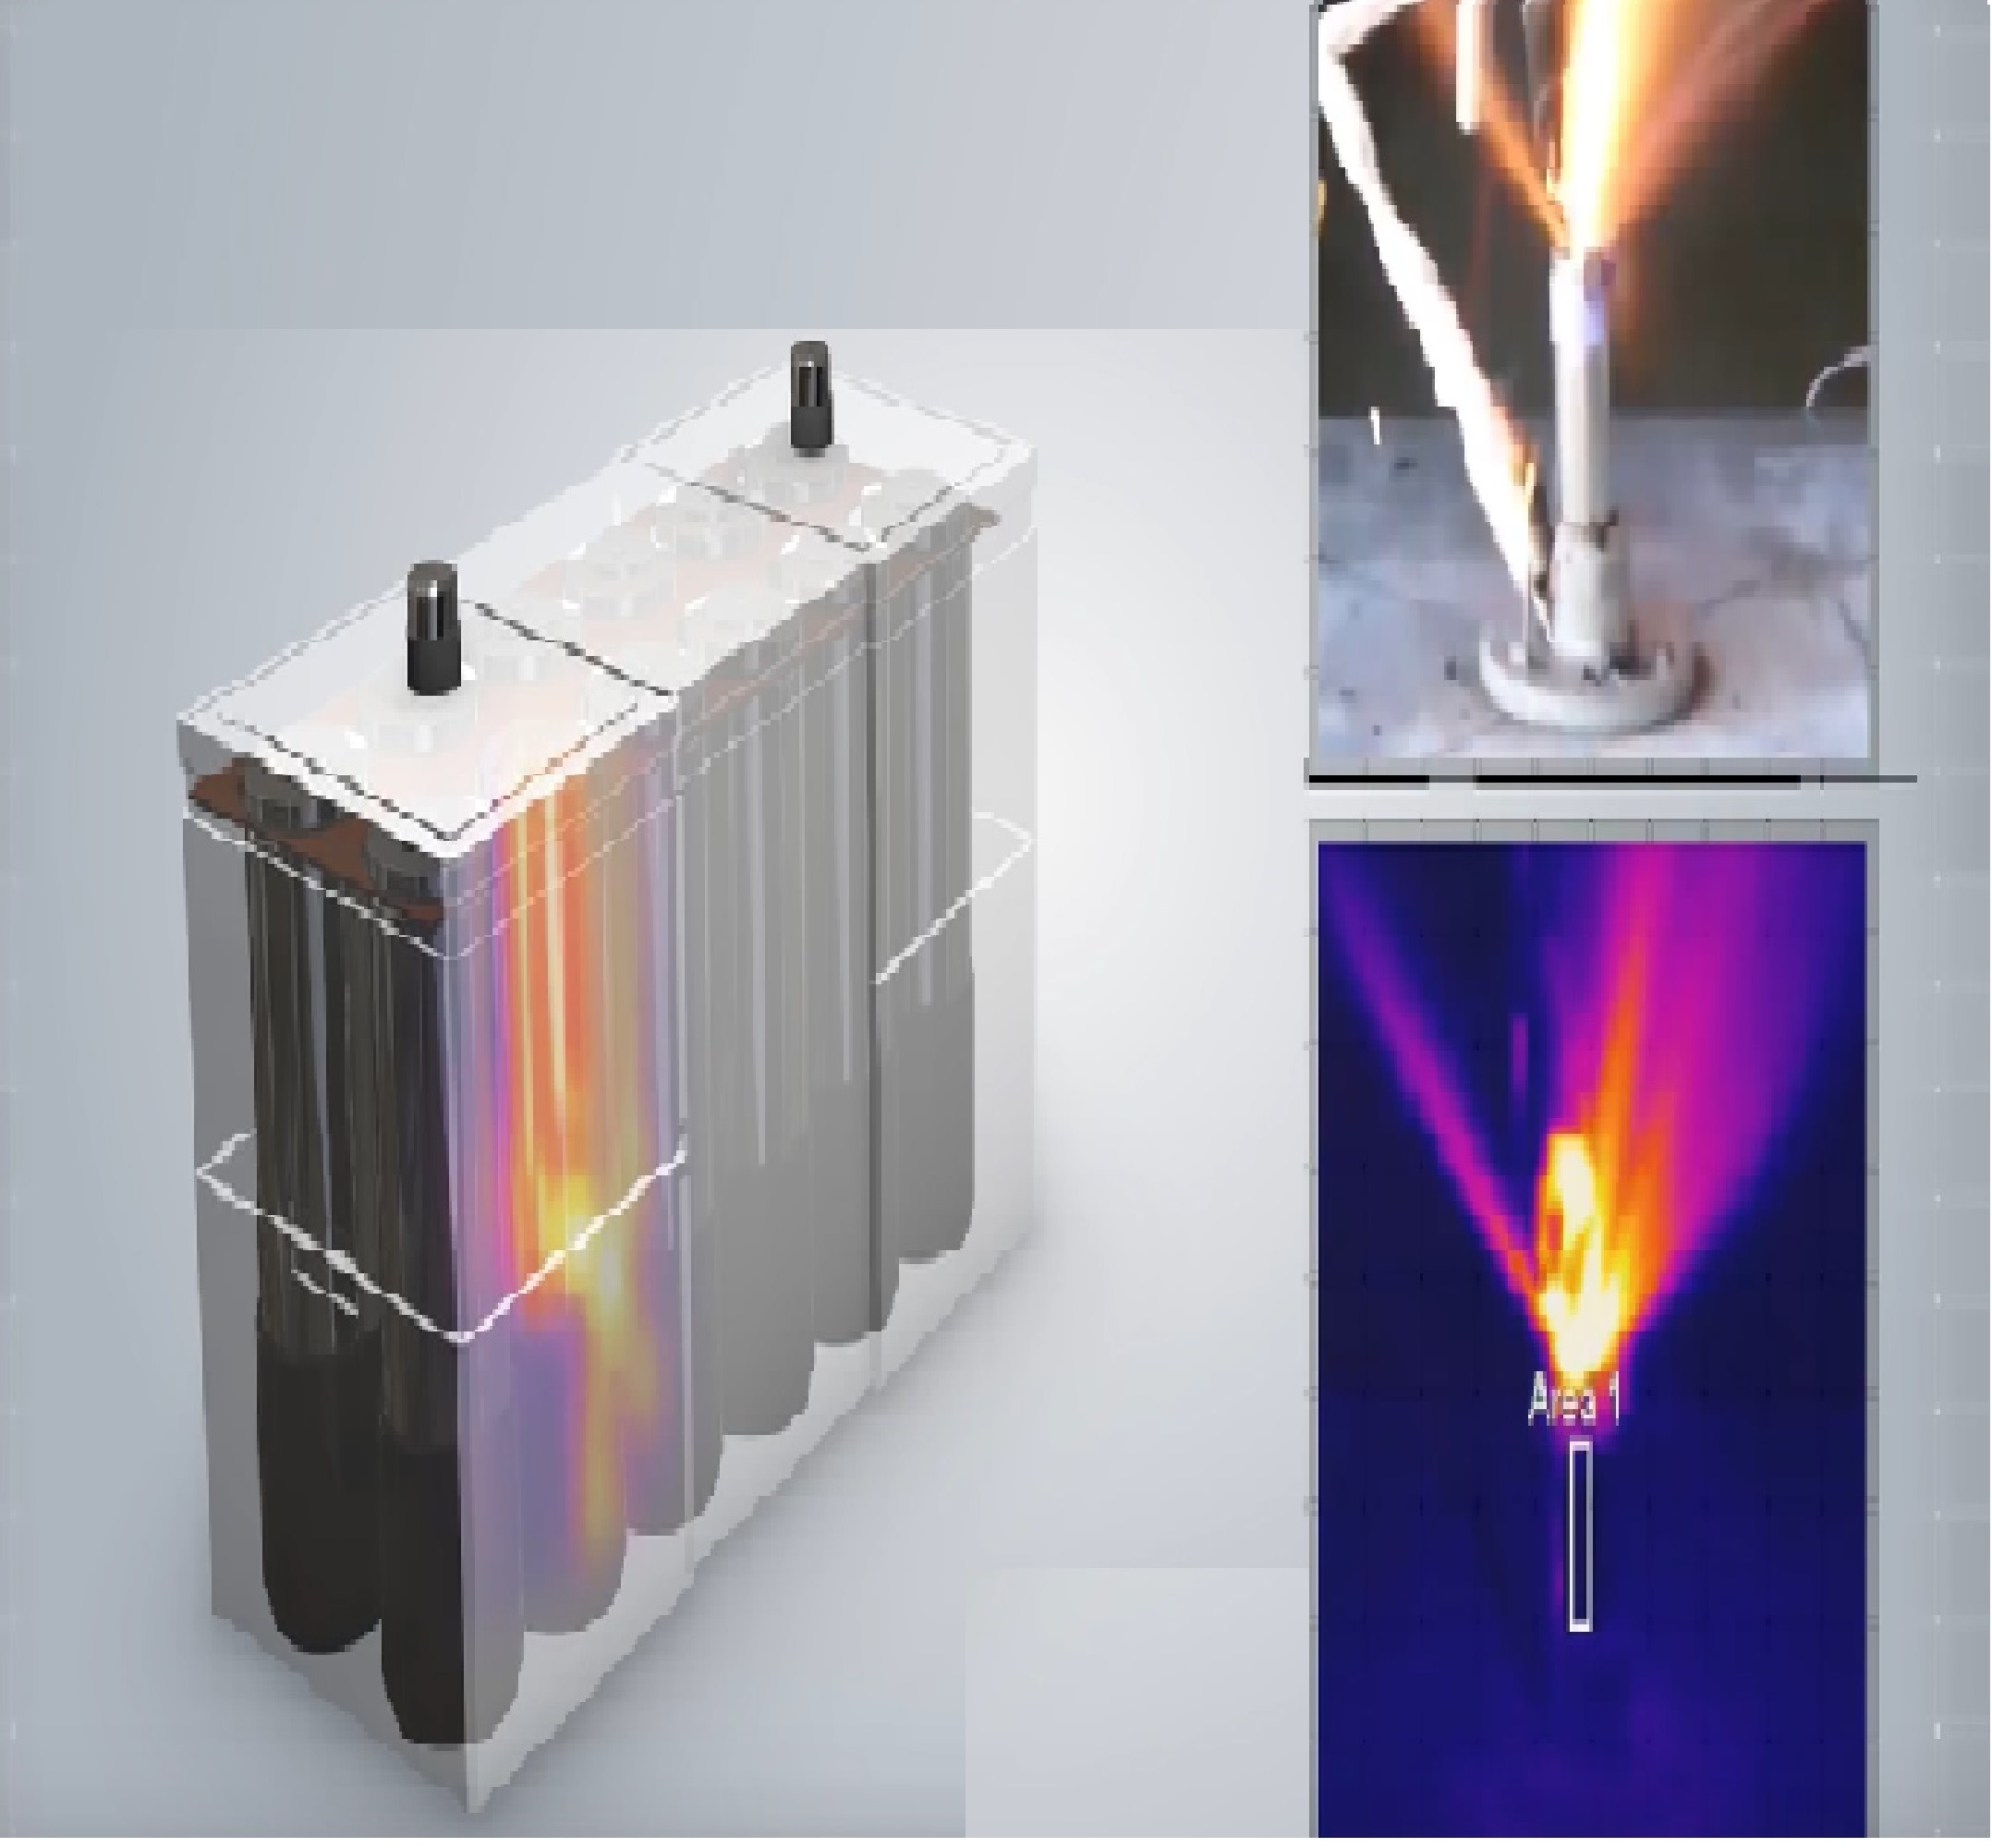 Battery is being tested by inducing the Internal Short Circuit method to one of the cells while introducing heat.